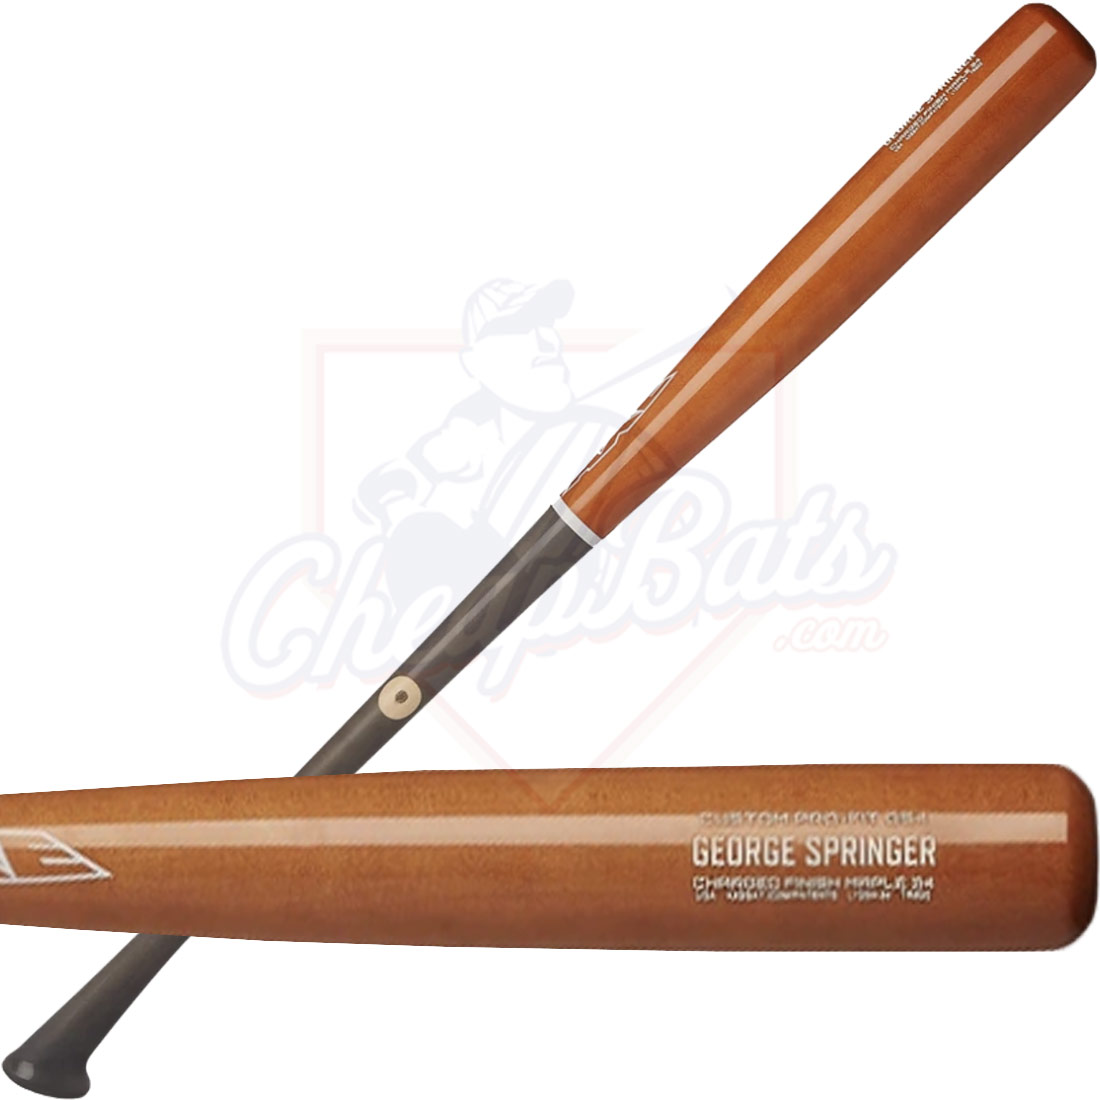 Axe Pro-Fit GS4 George Springer Maple Wood Baseball Bat L123H